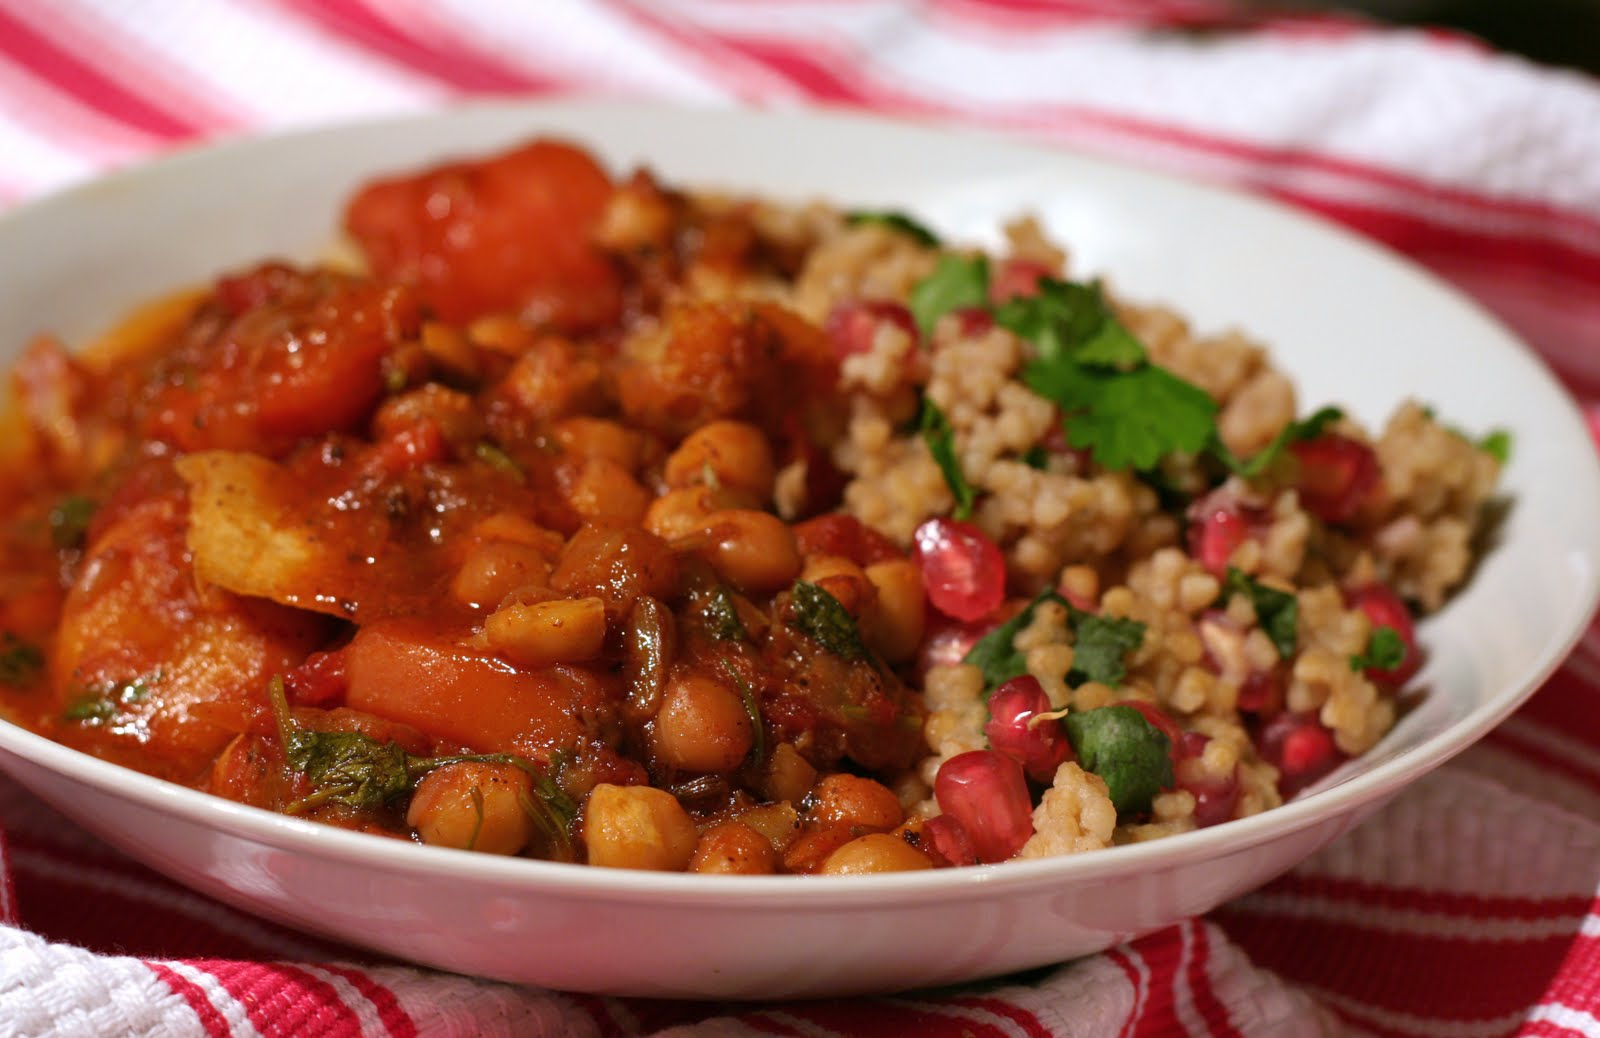 Lamb tagine with apricots and chickpeas